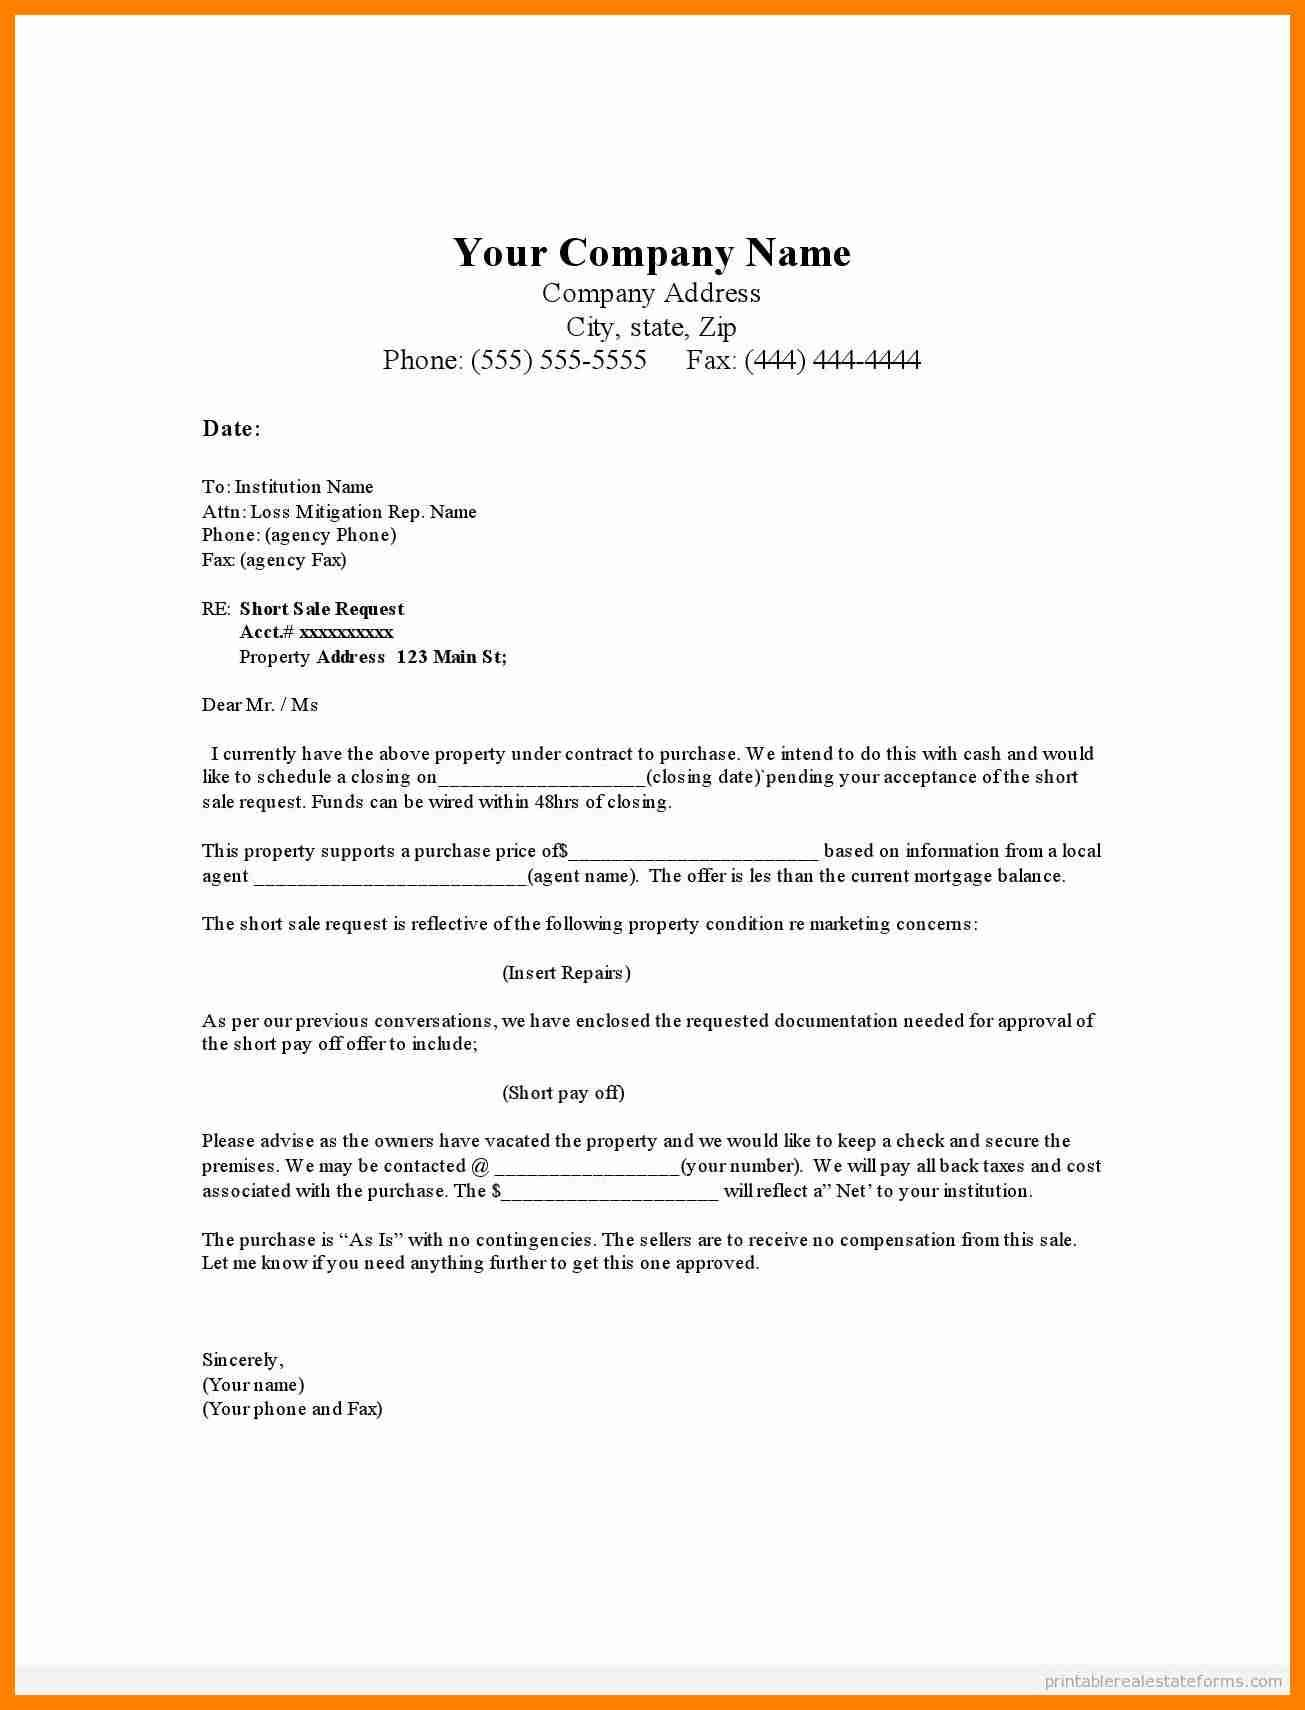 home buyer letter to seller template Collection-letter to home seller from er template 18-c